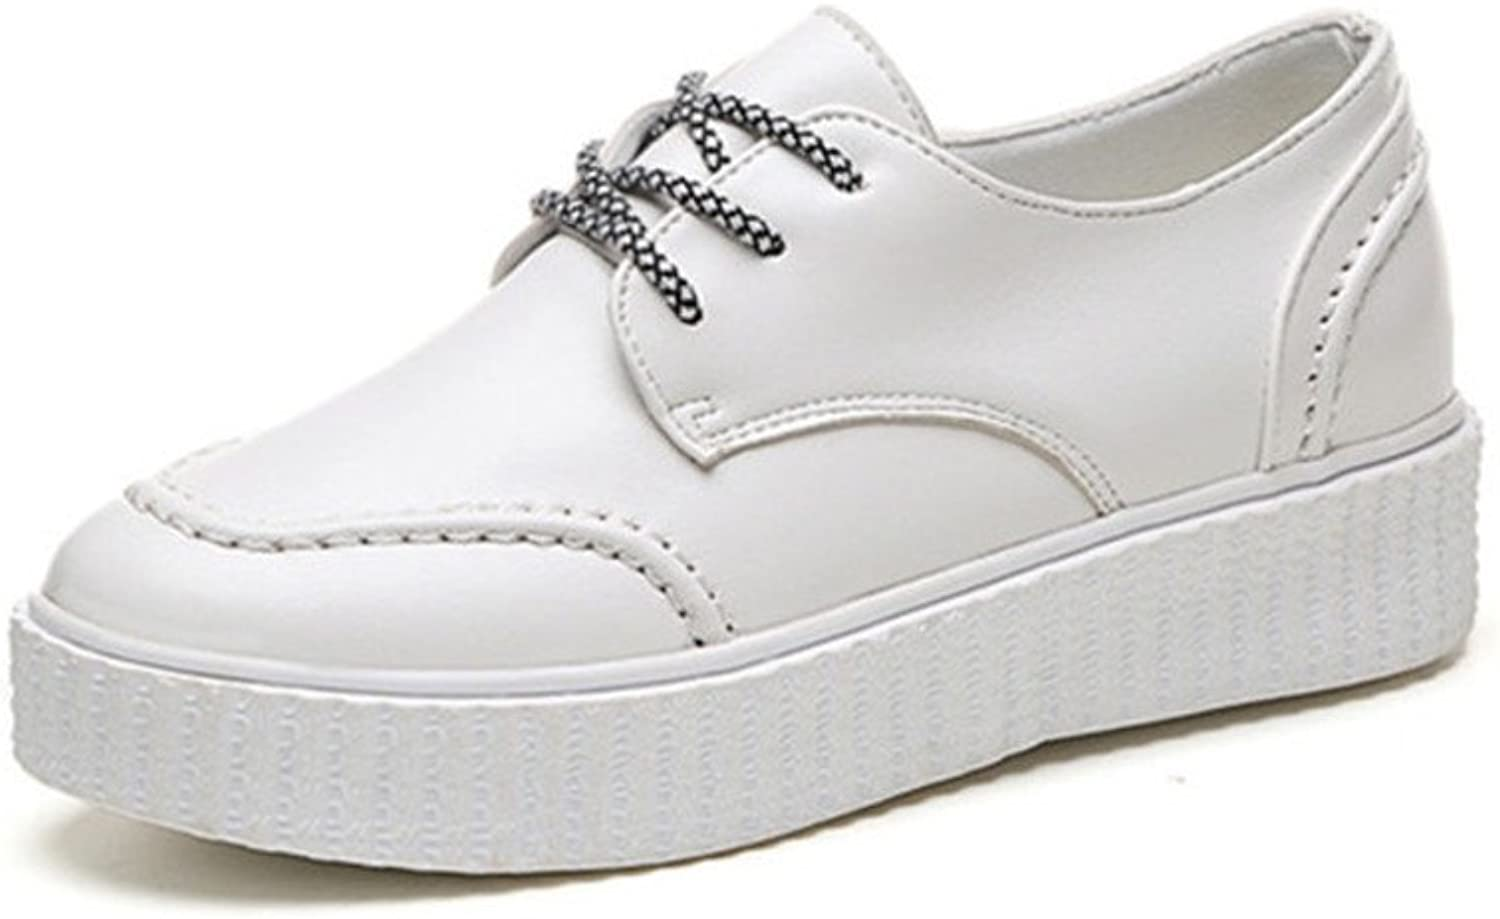 Huhuj Korean Version of Platform shoes in The Fall shoes with Platform shoes UK Wind Casual shoes Small White shoes Retro shoes